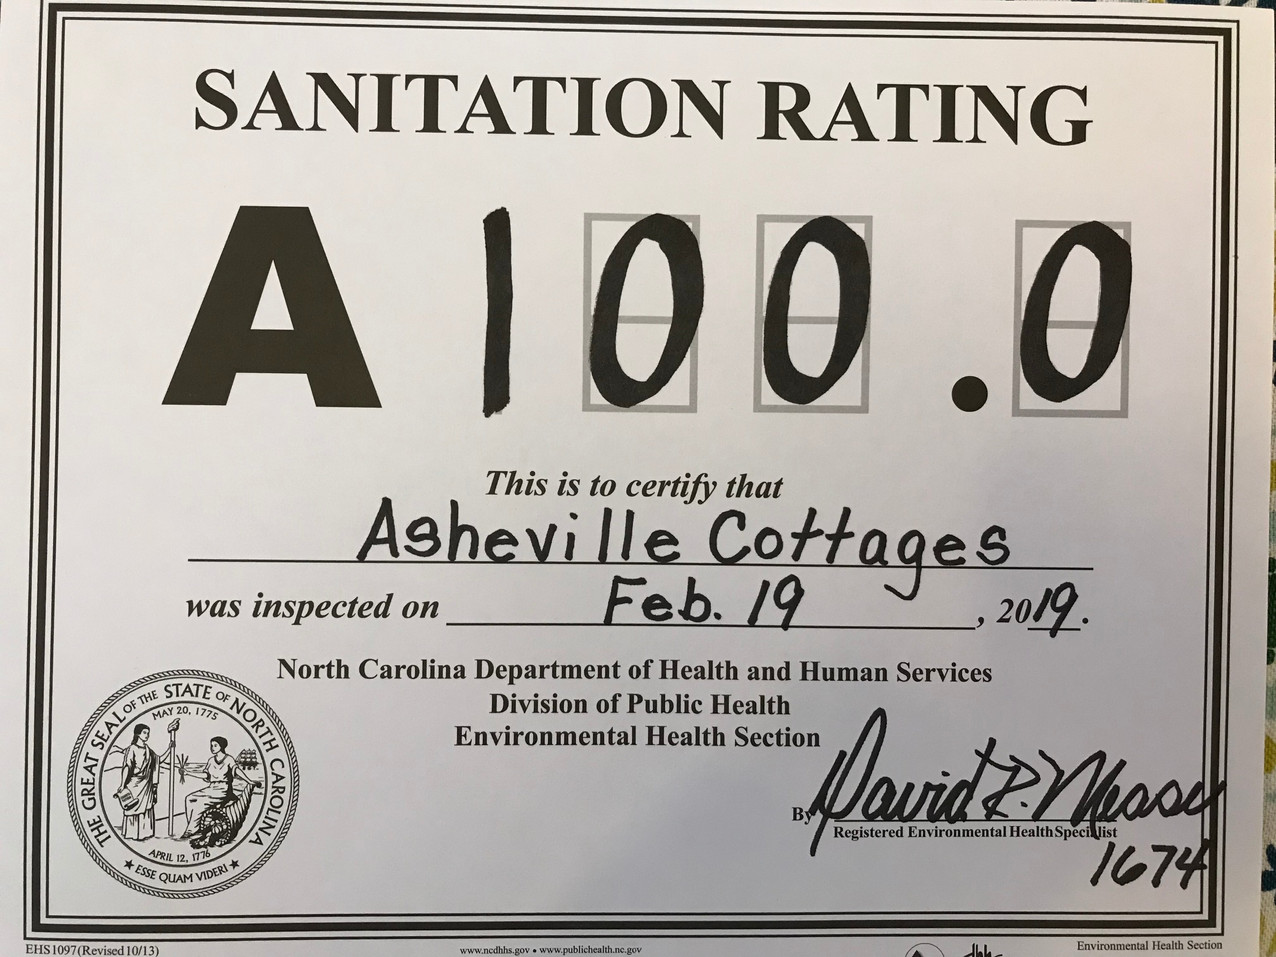 A perfect sanitation score